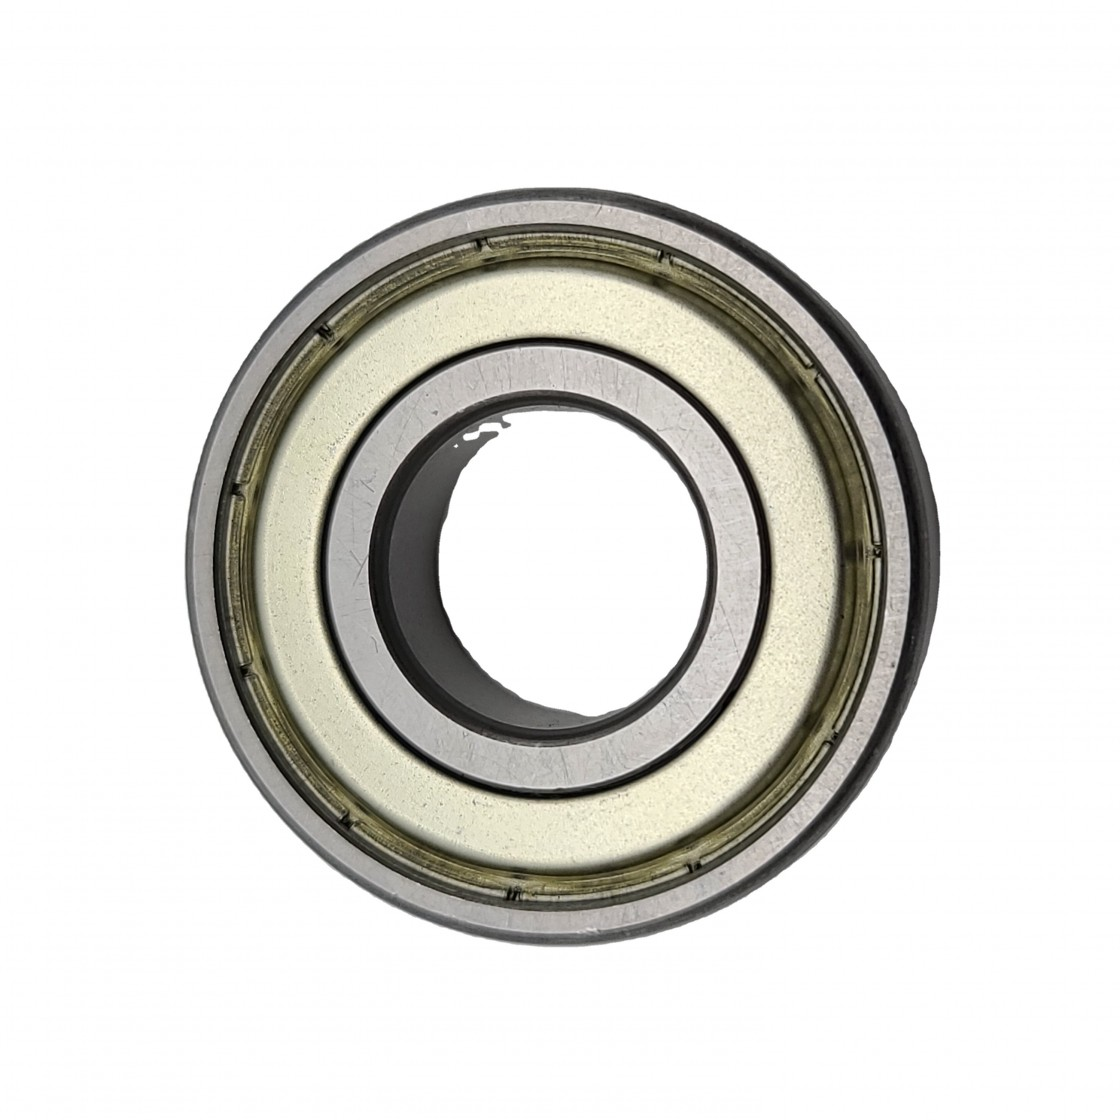 Top 10 full ZrO2 or Si3N4 ceramic bearing 608 2rs for skateboard